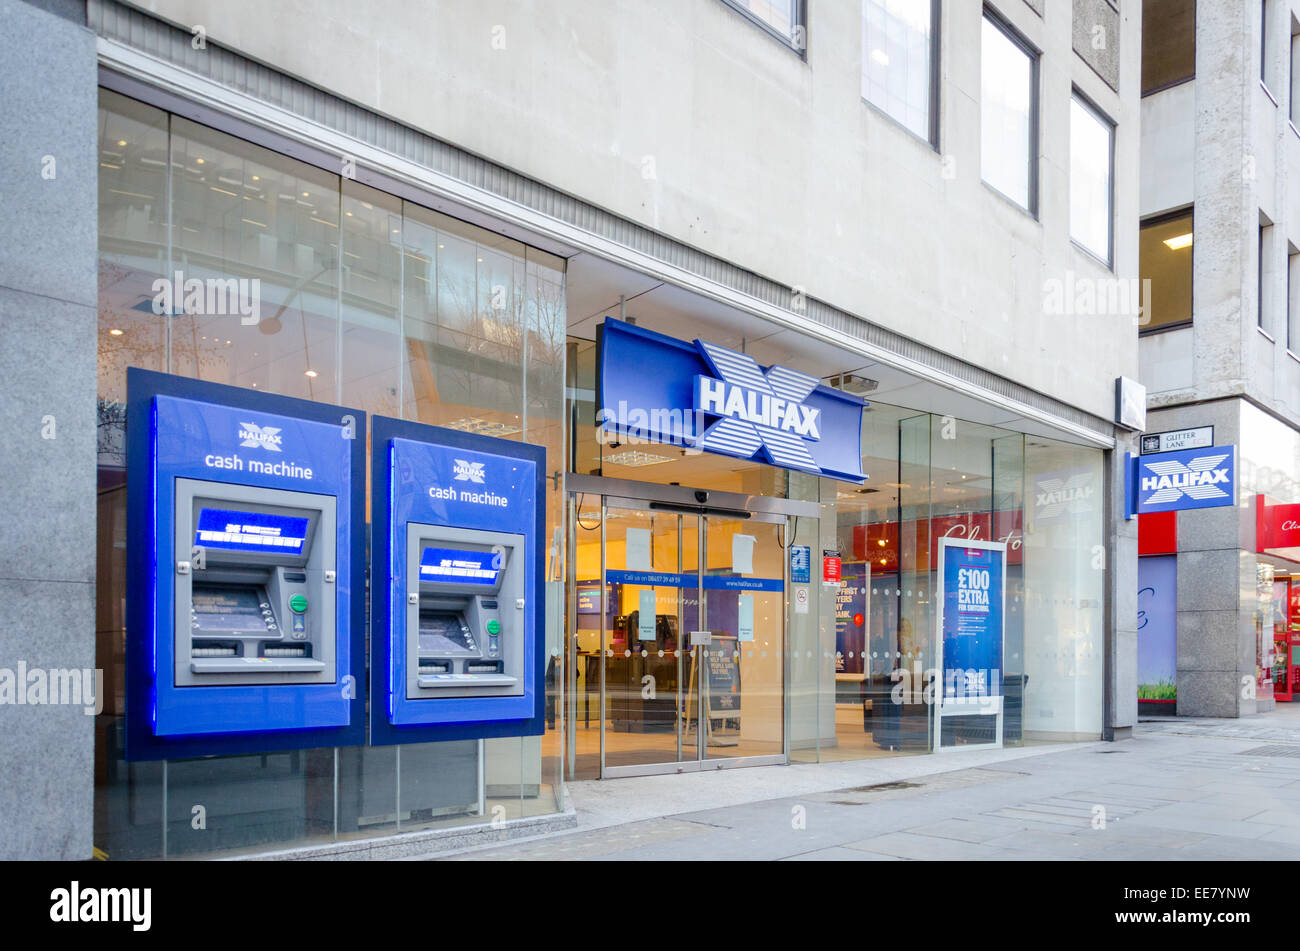 Branch of Halifax Bank on Cheapside, London, UK. - Stock Image